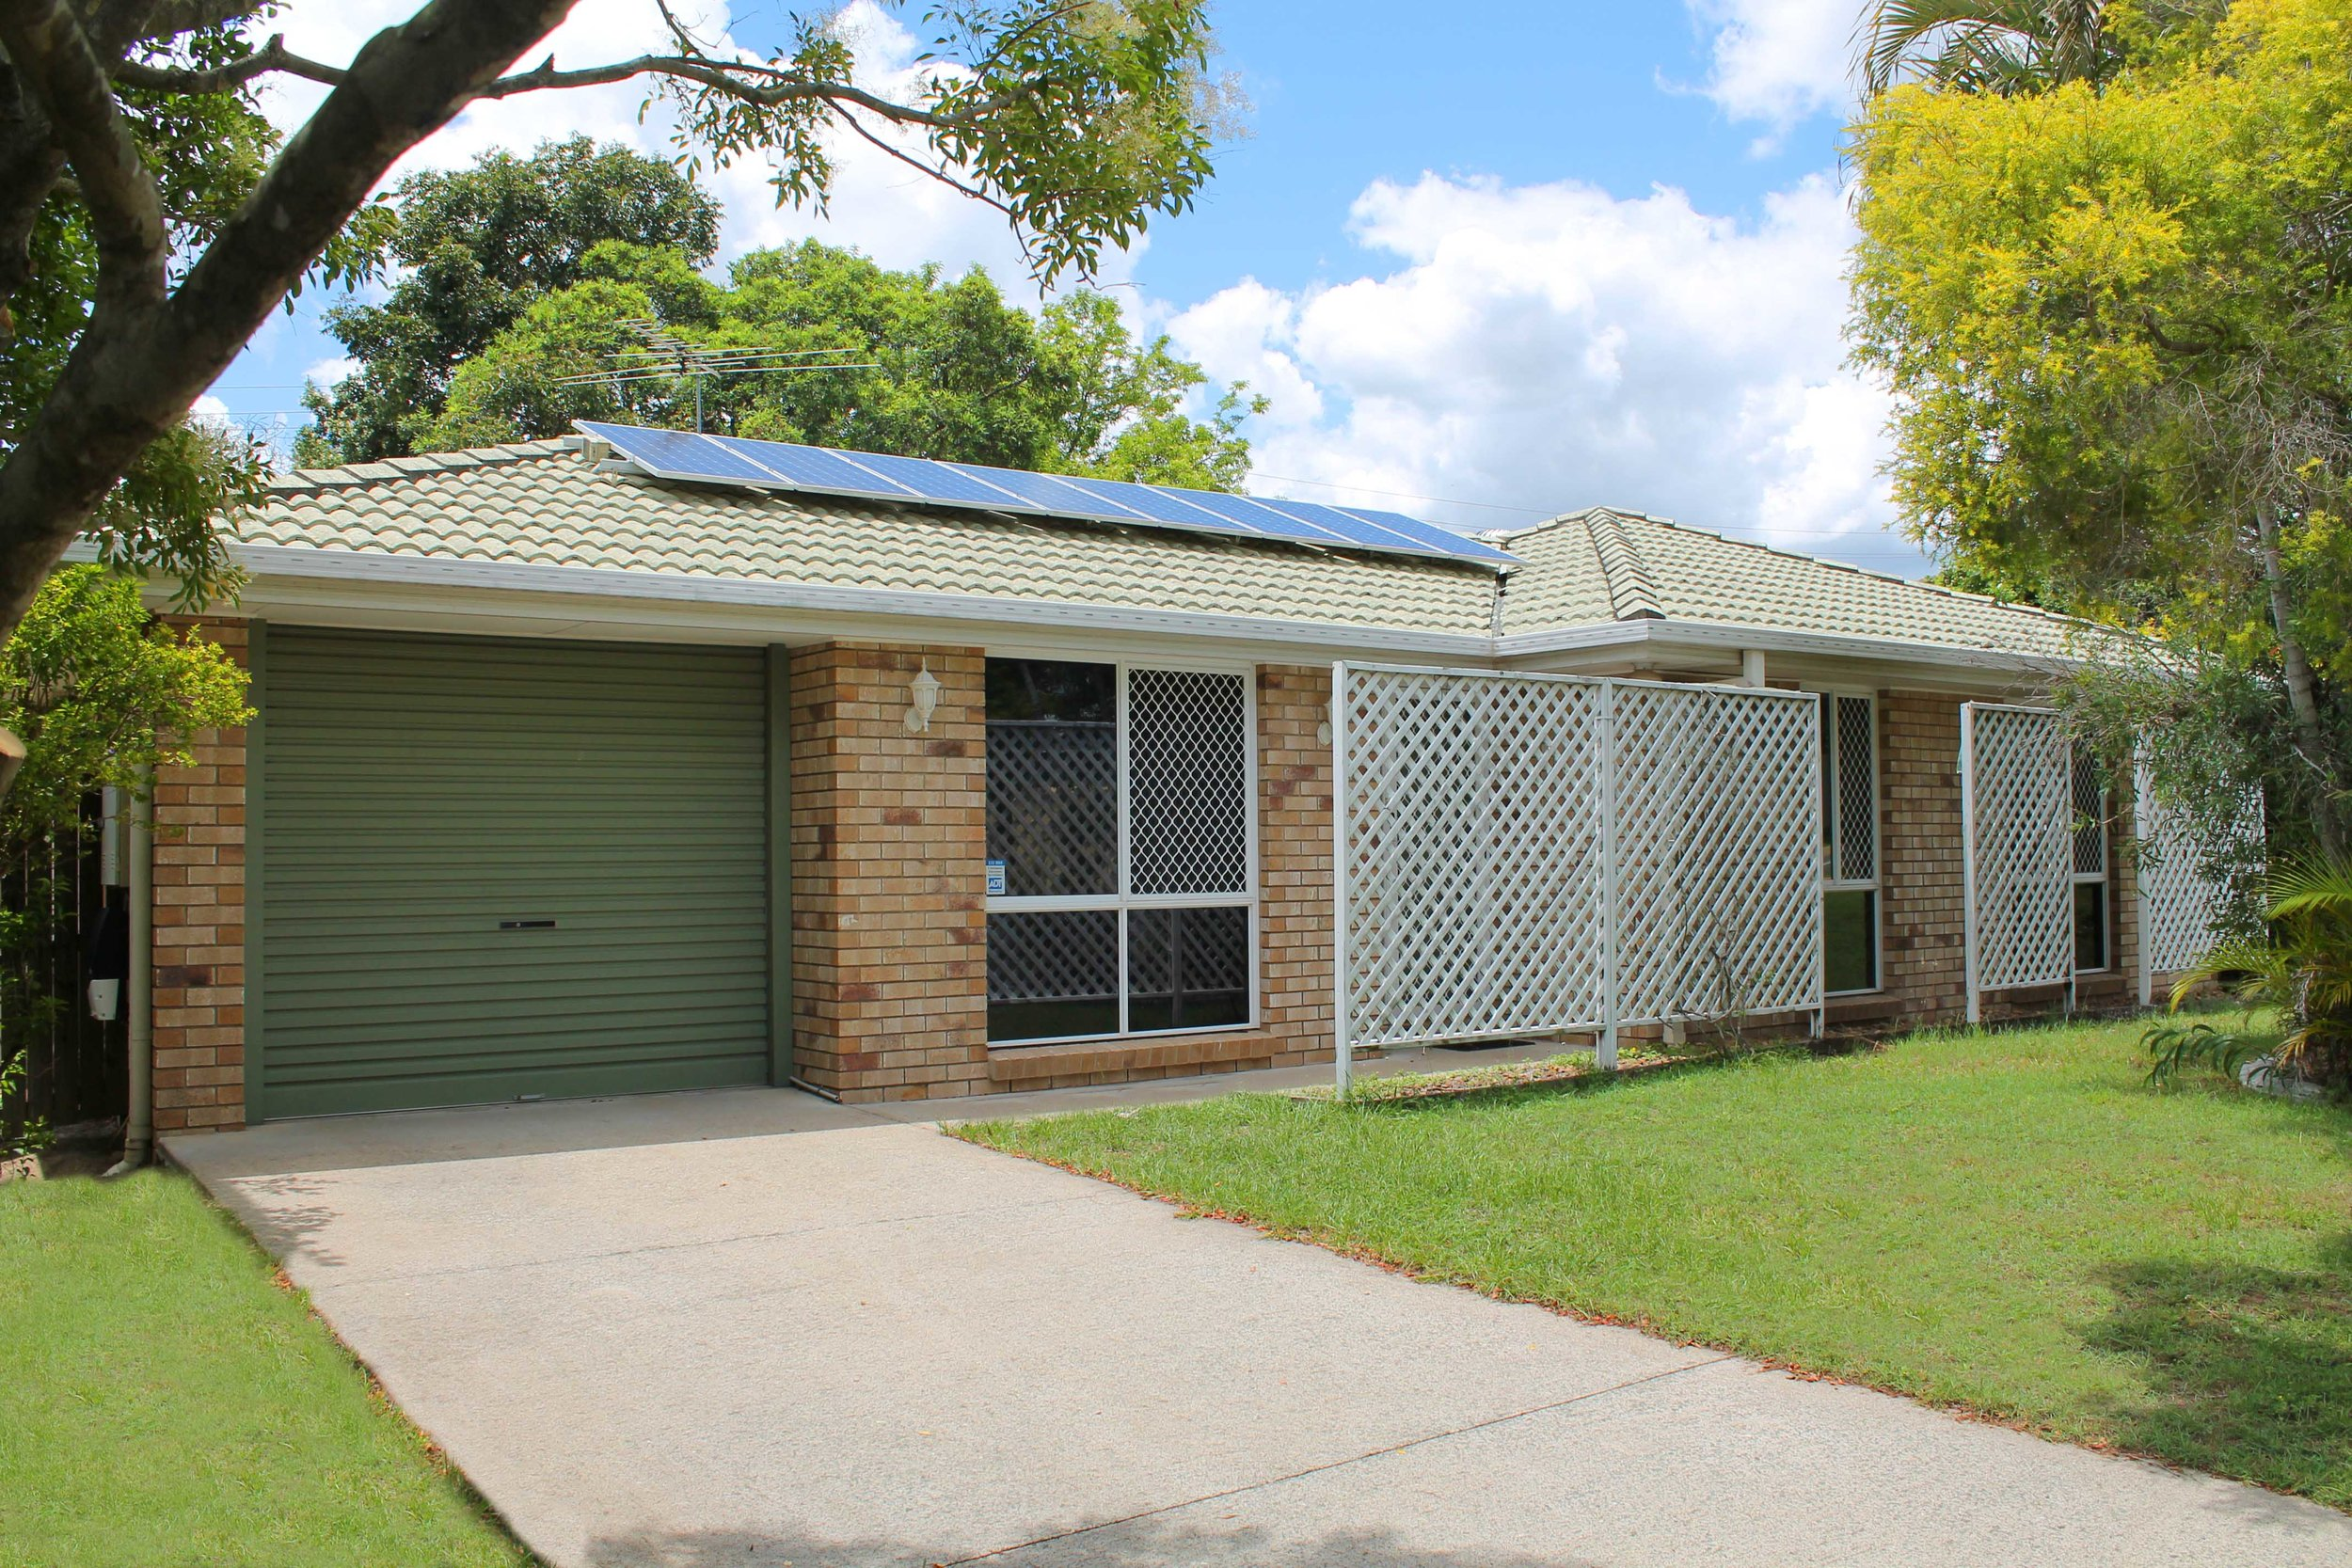 62 Bottlebrush Drive, Regents Park QLD 4118 - SOLD OFF-MARKET $323,000